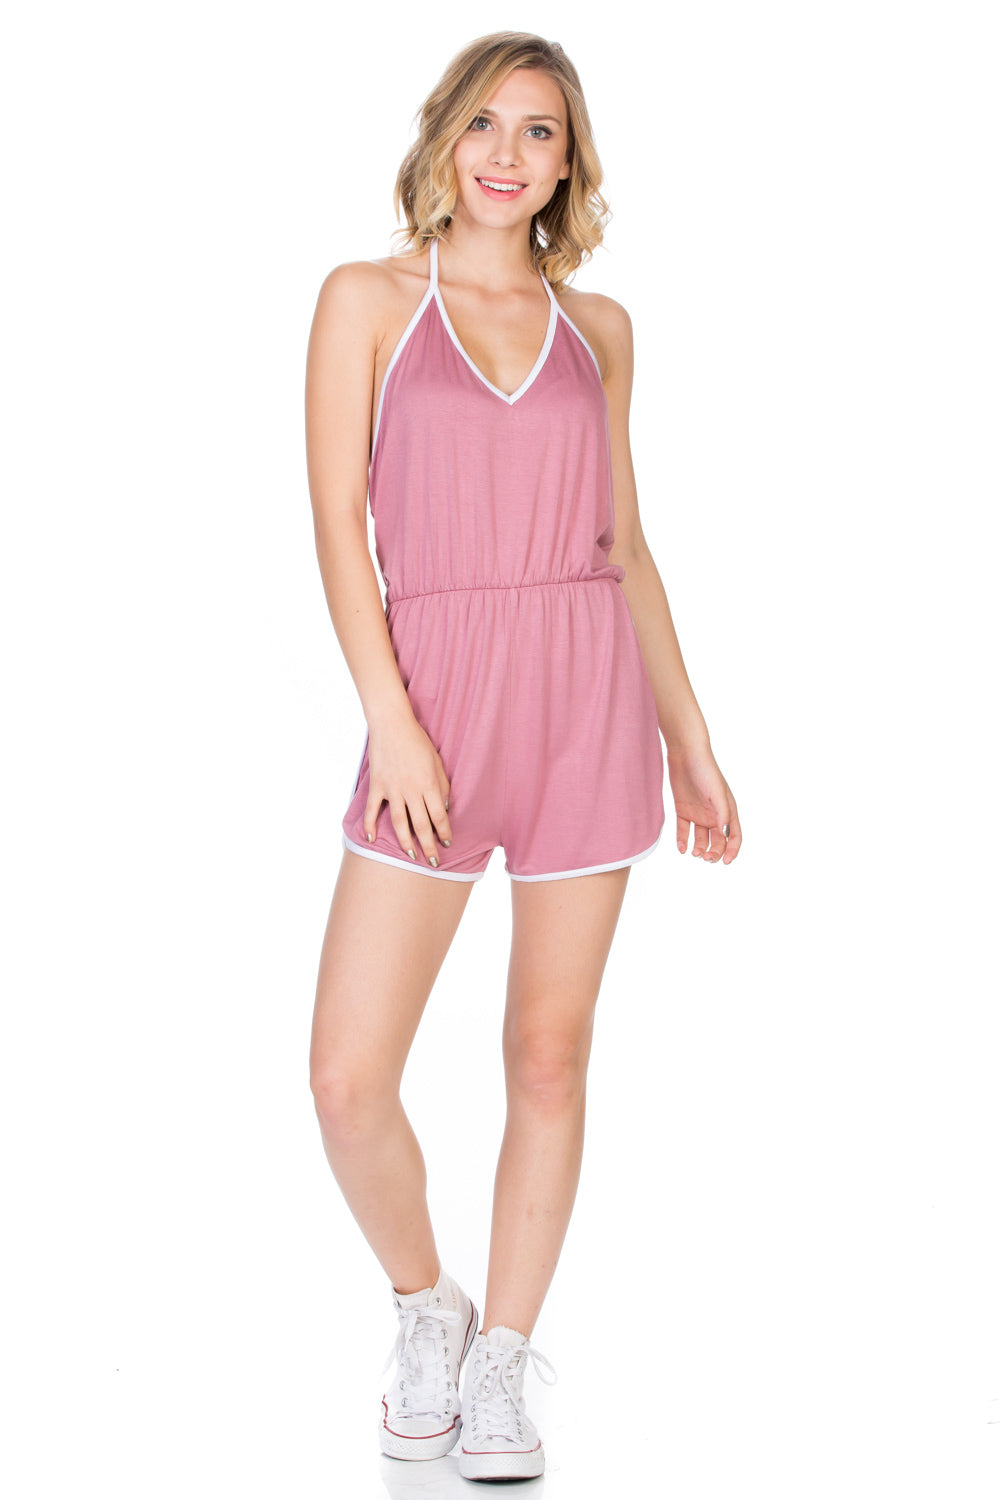 Halter-Neck Wild Open Back Summer Jumpsuit Rompers